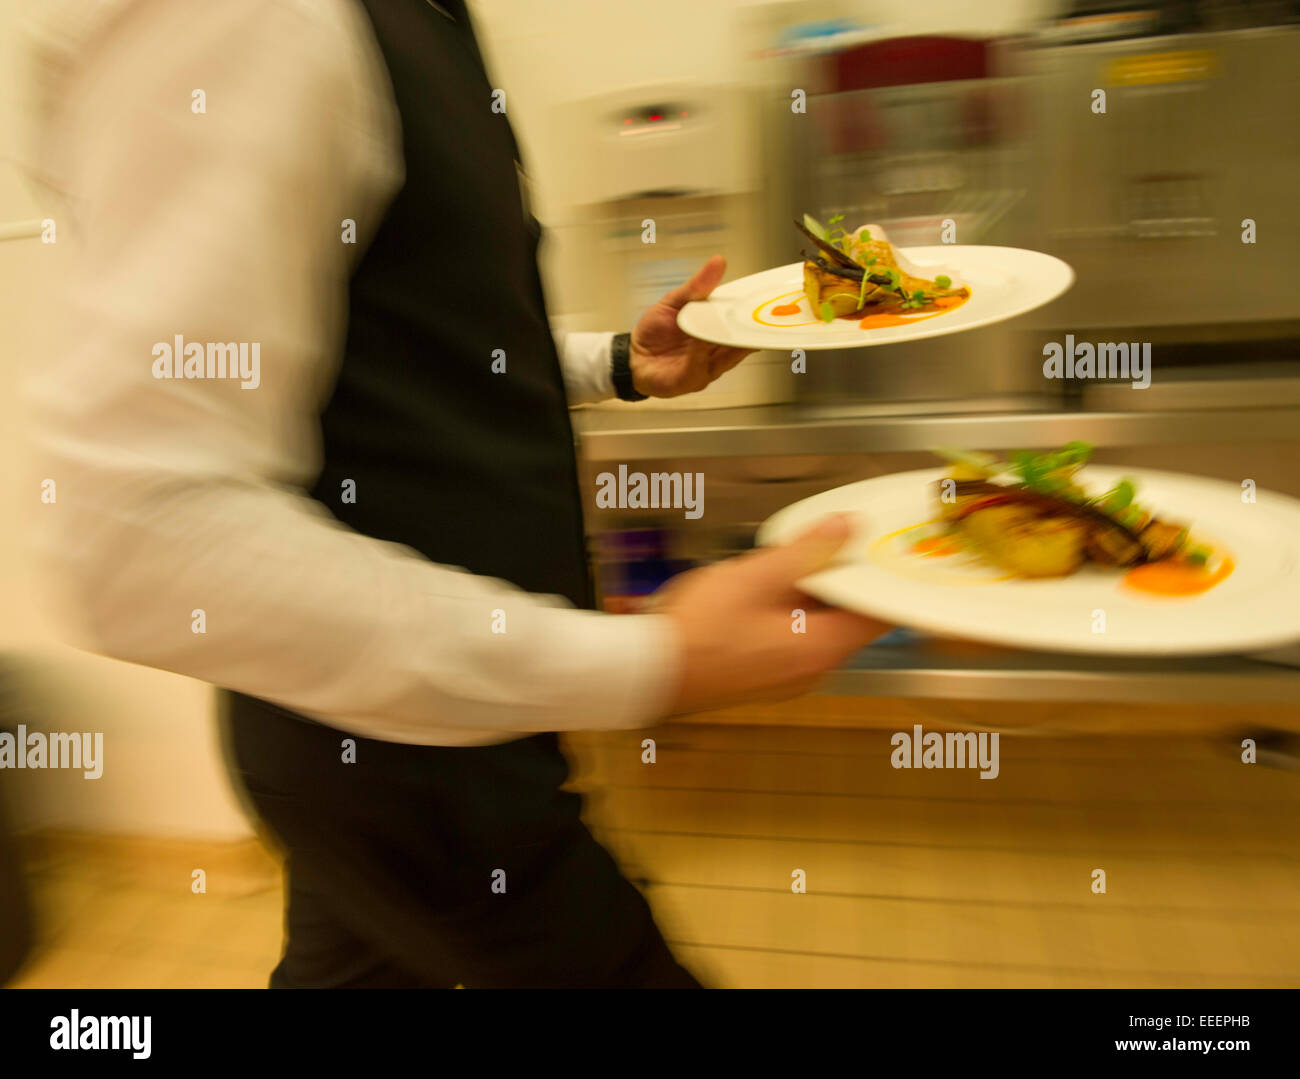 A waitress bringing food from the kitchen - Stock Image